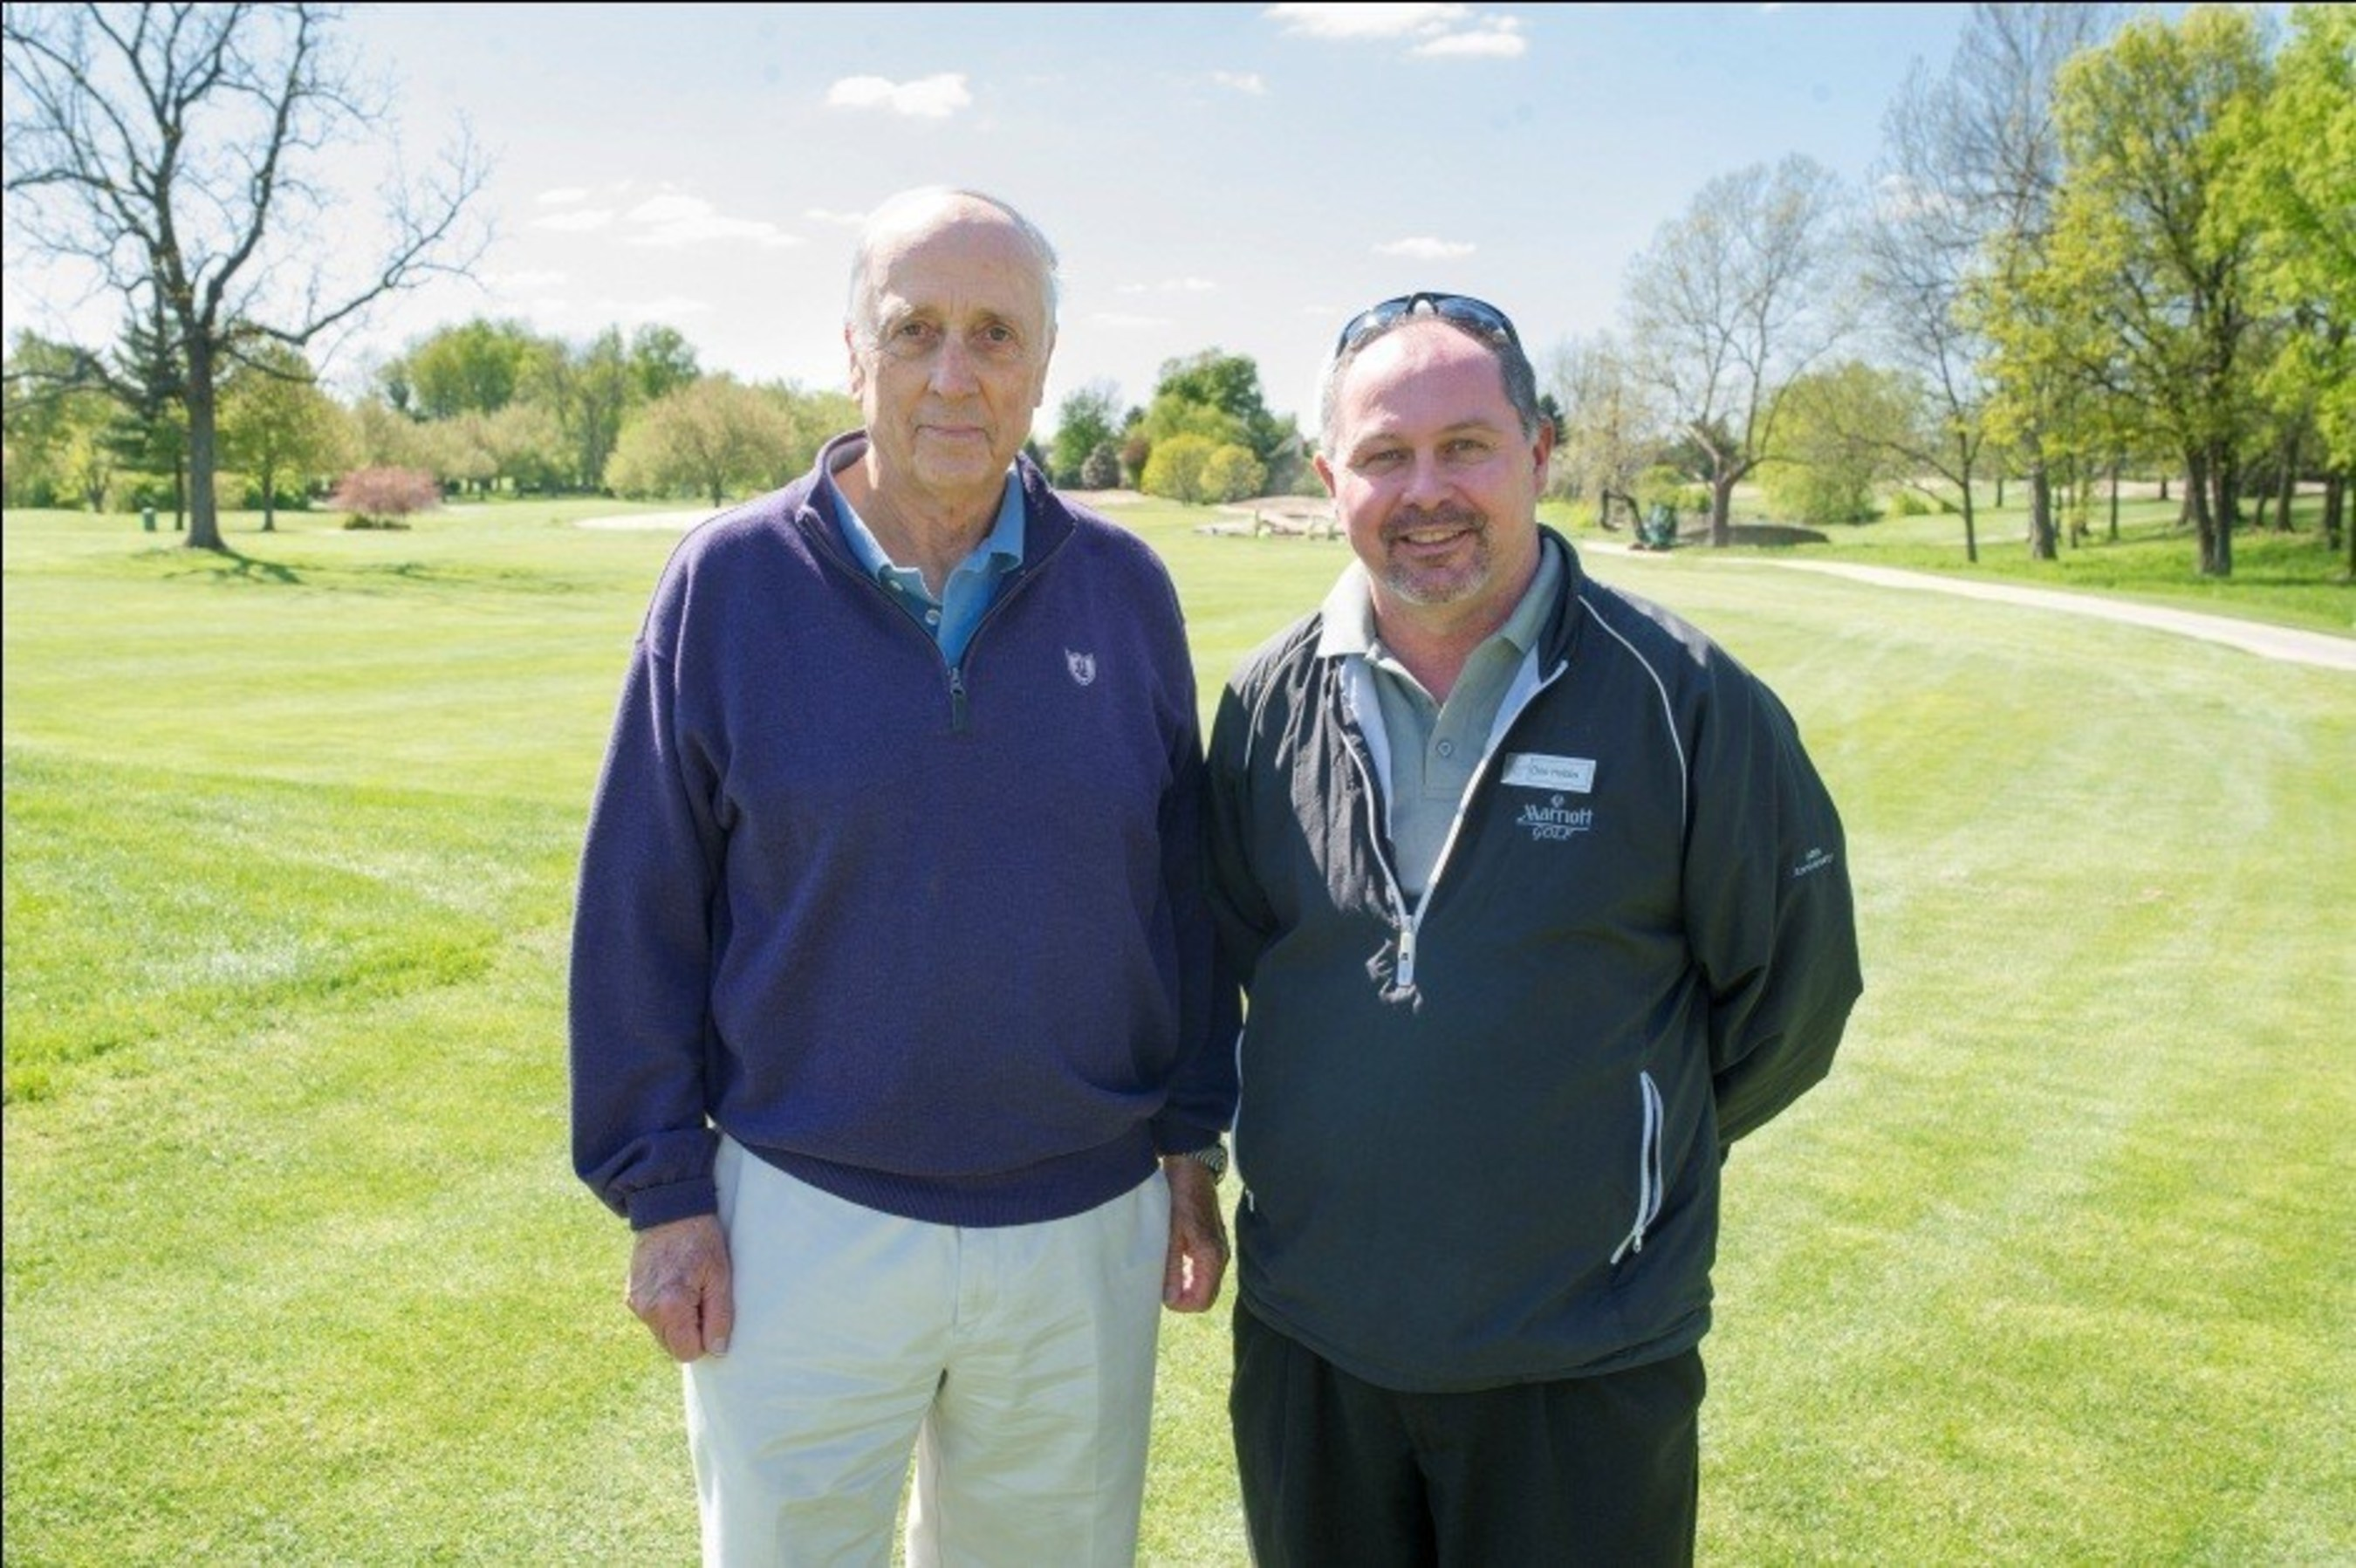 Renowned golf architect Rees Jones (left) and Griffin Gate Marriott Resort & Spa's Director of Golf Don Hobbs stand at the 13th hole at Griffin Gate golf course. The course underwent a $1 million bunker renovation. For information, visit www.GriffinGateGolf.com or call 1-859-288-6193.